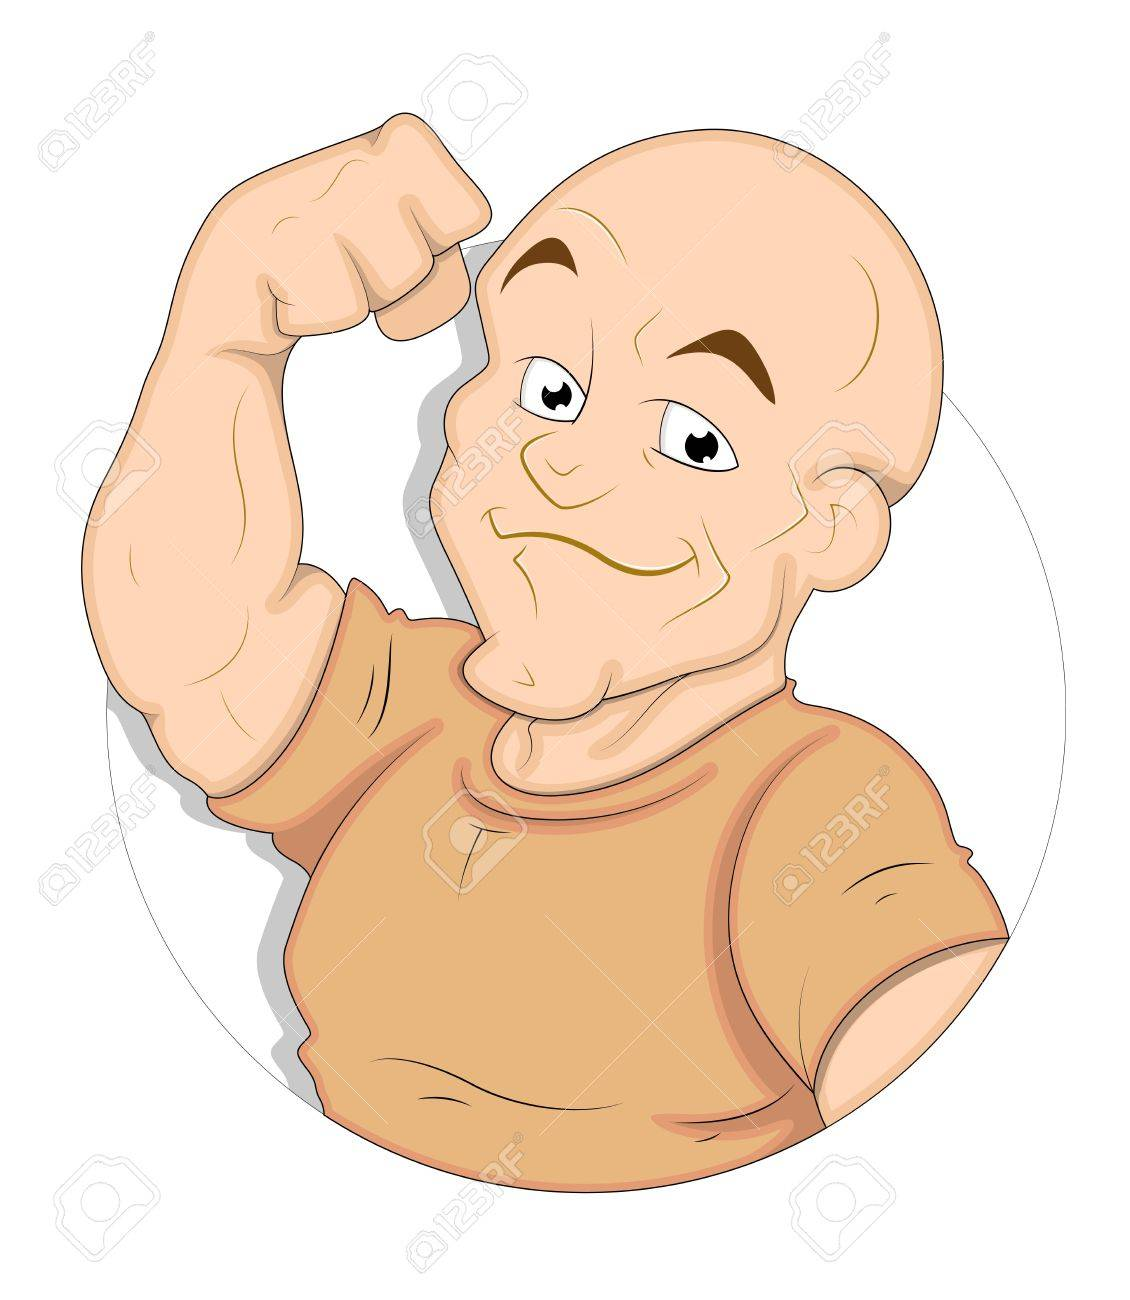 Cartoon Bodybuilder Stock Vector - 16775453